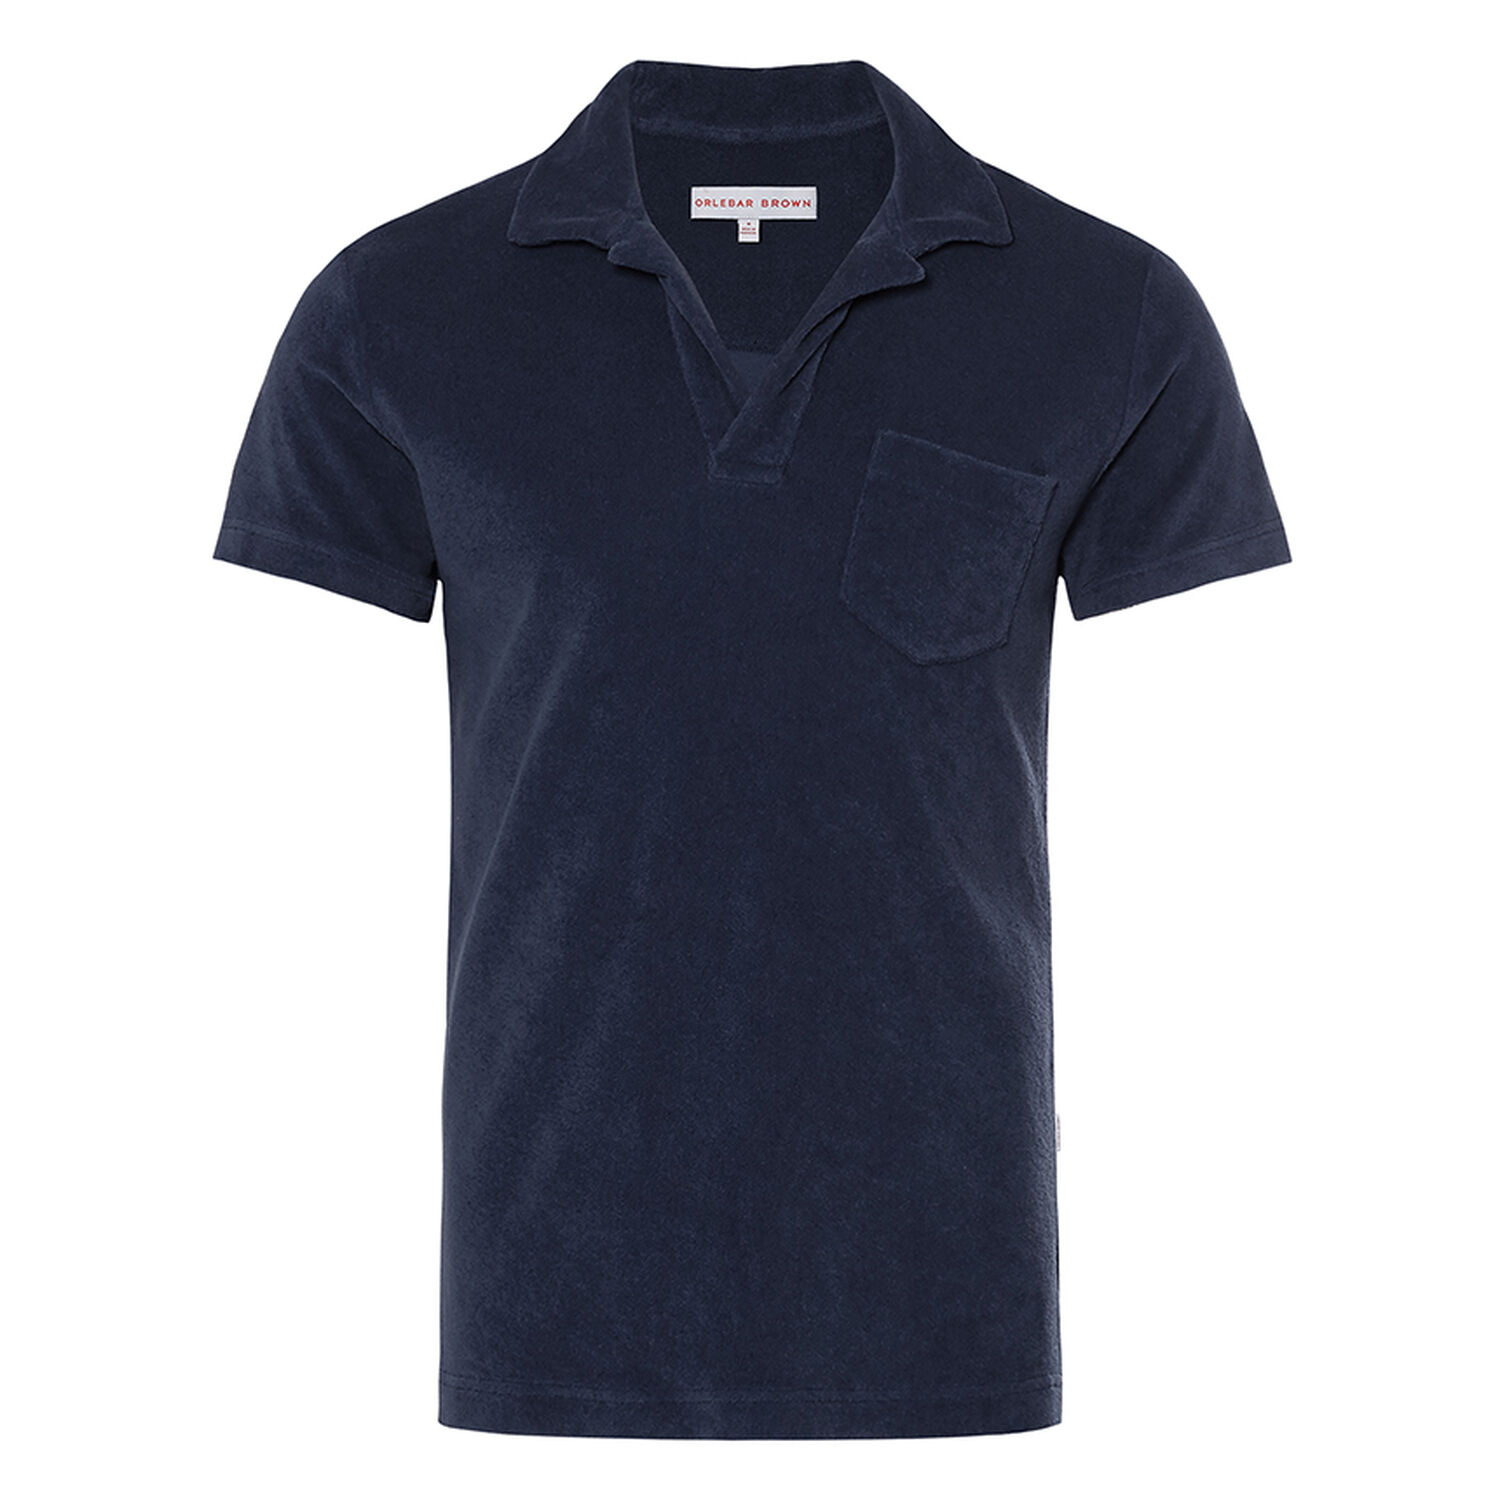 743b3ce5f7 Terry - Navy Towelling Resort Polo | Orlebar Brown